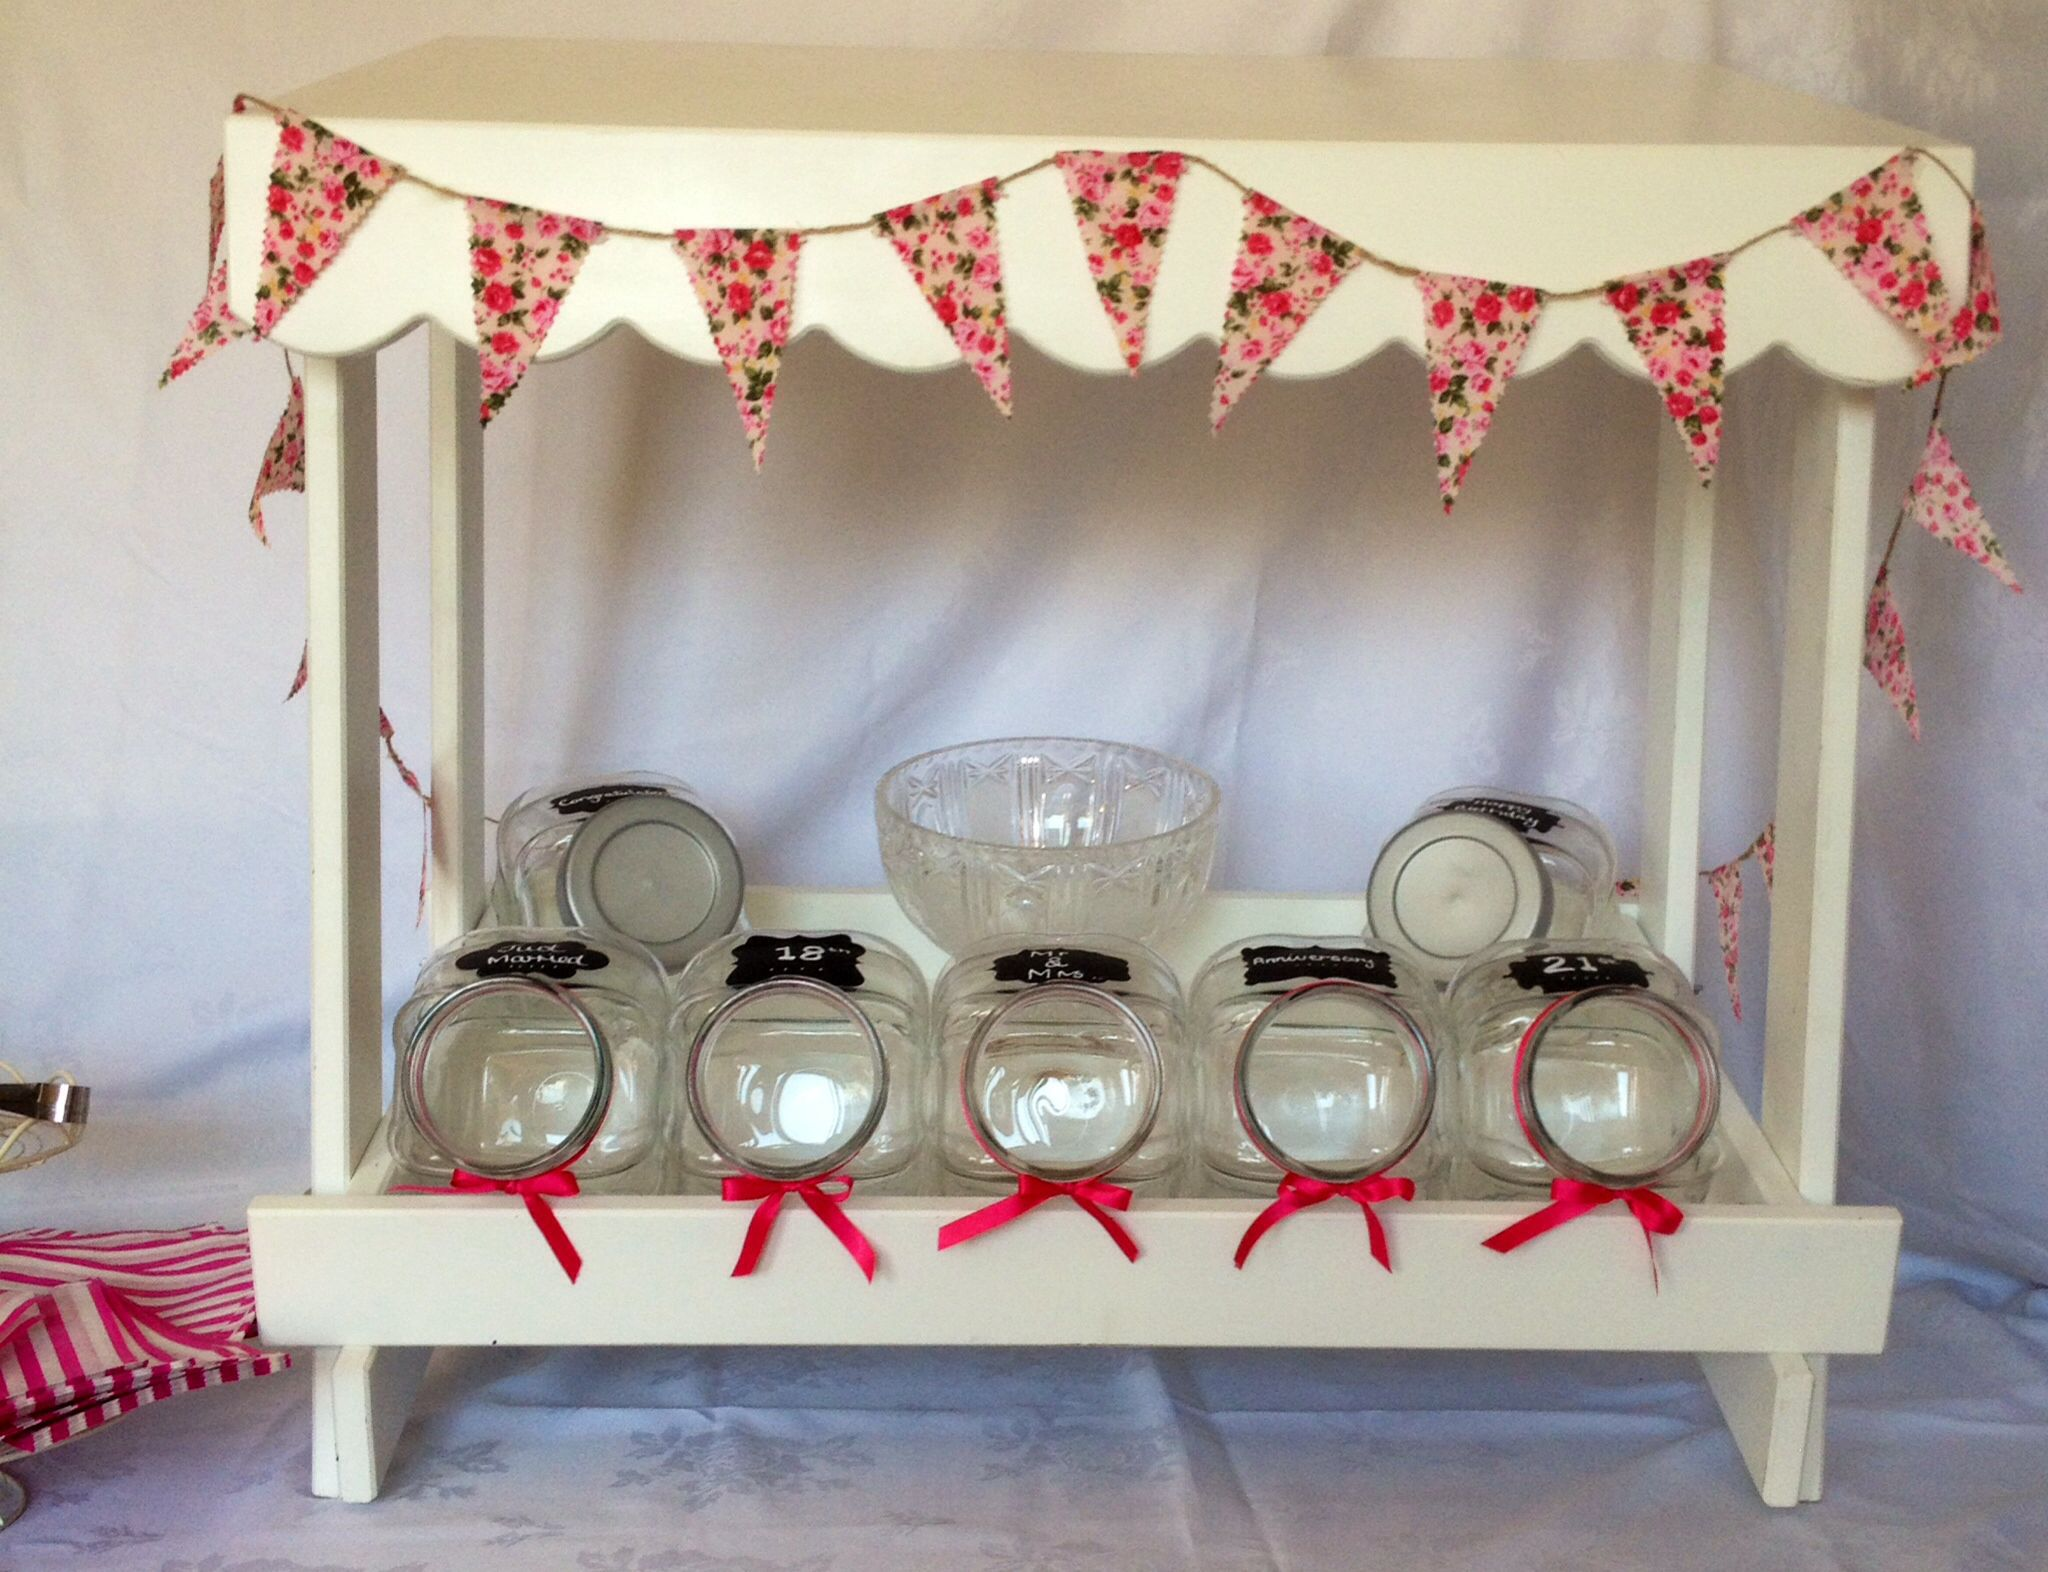 Our diy table top candy cart for hire from £ includes